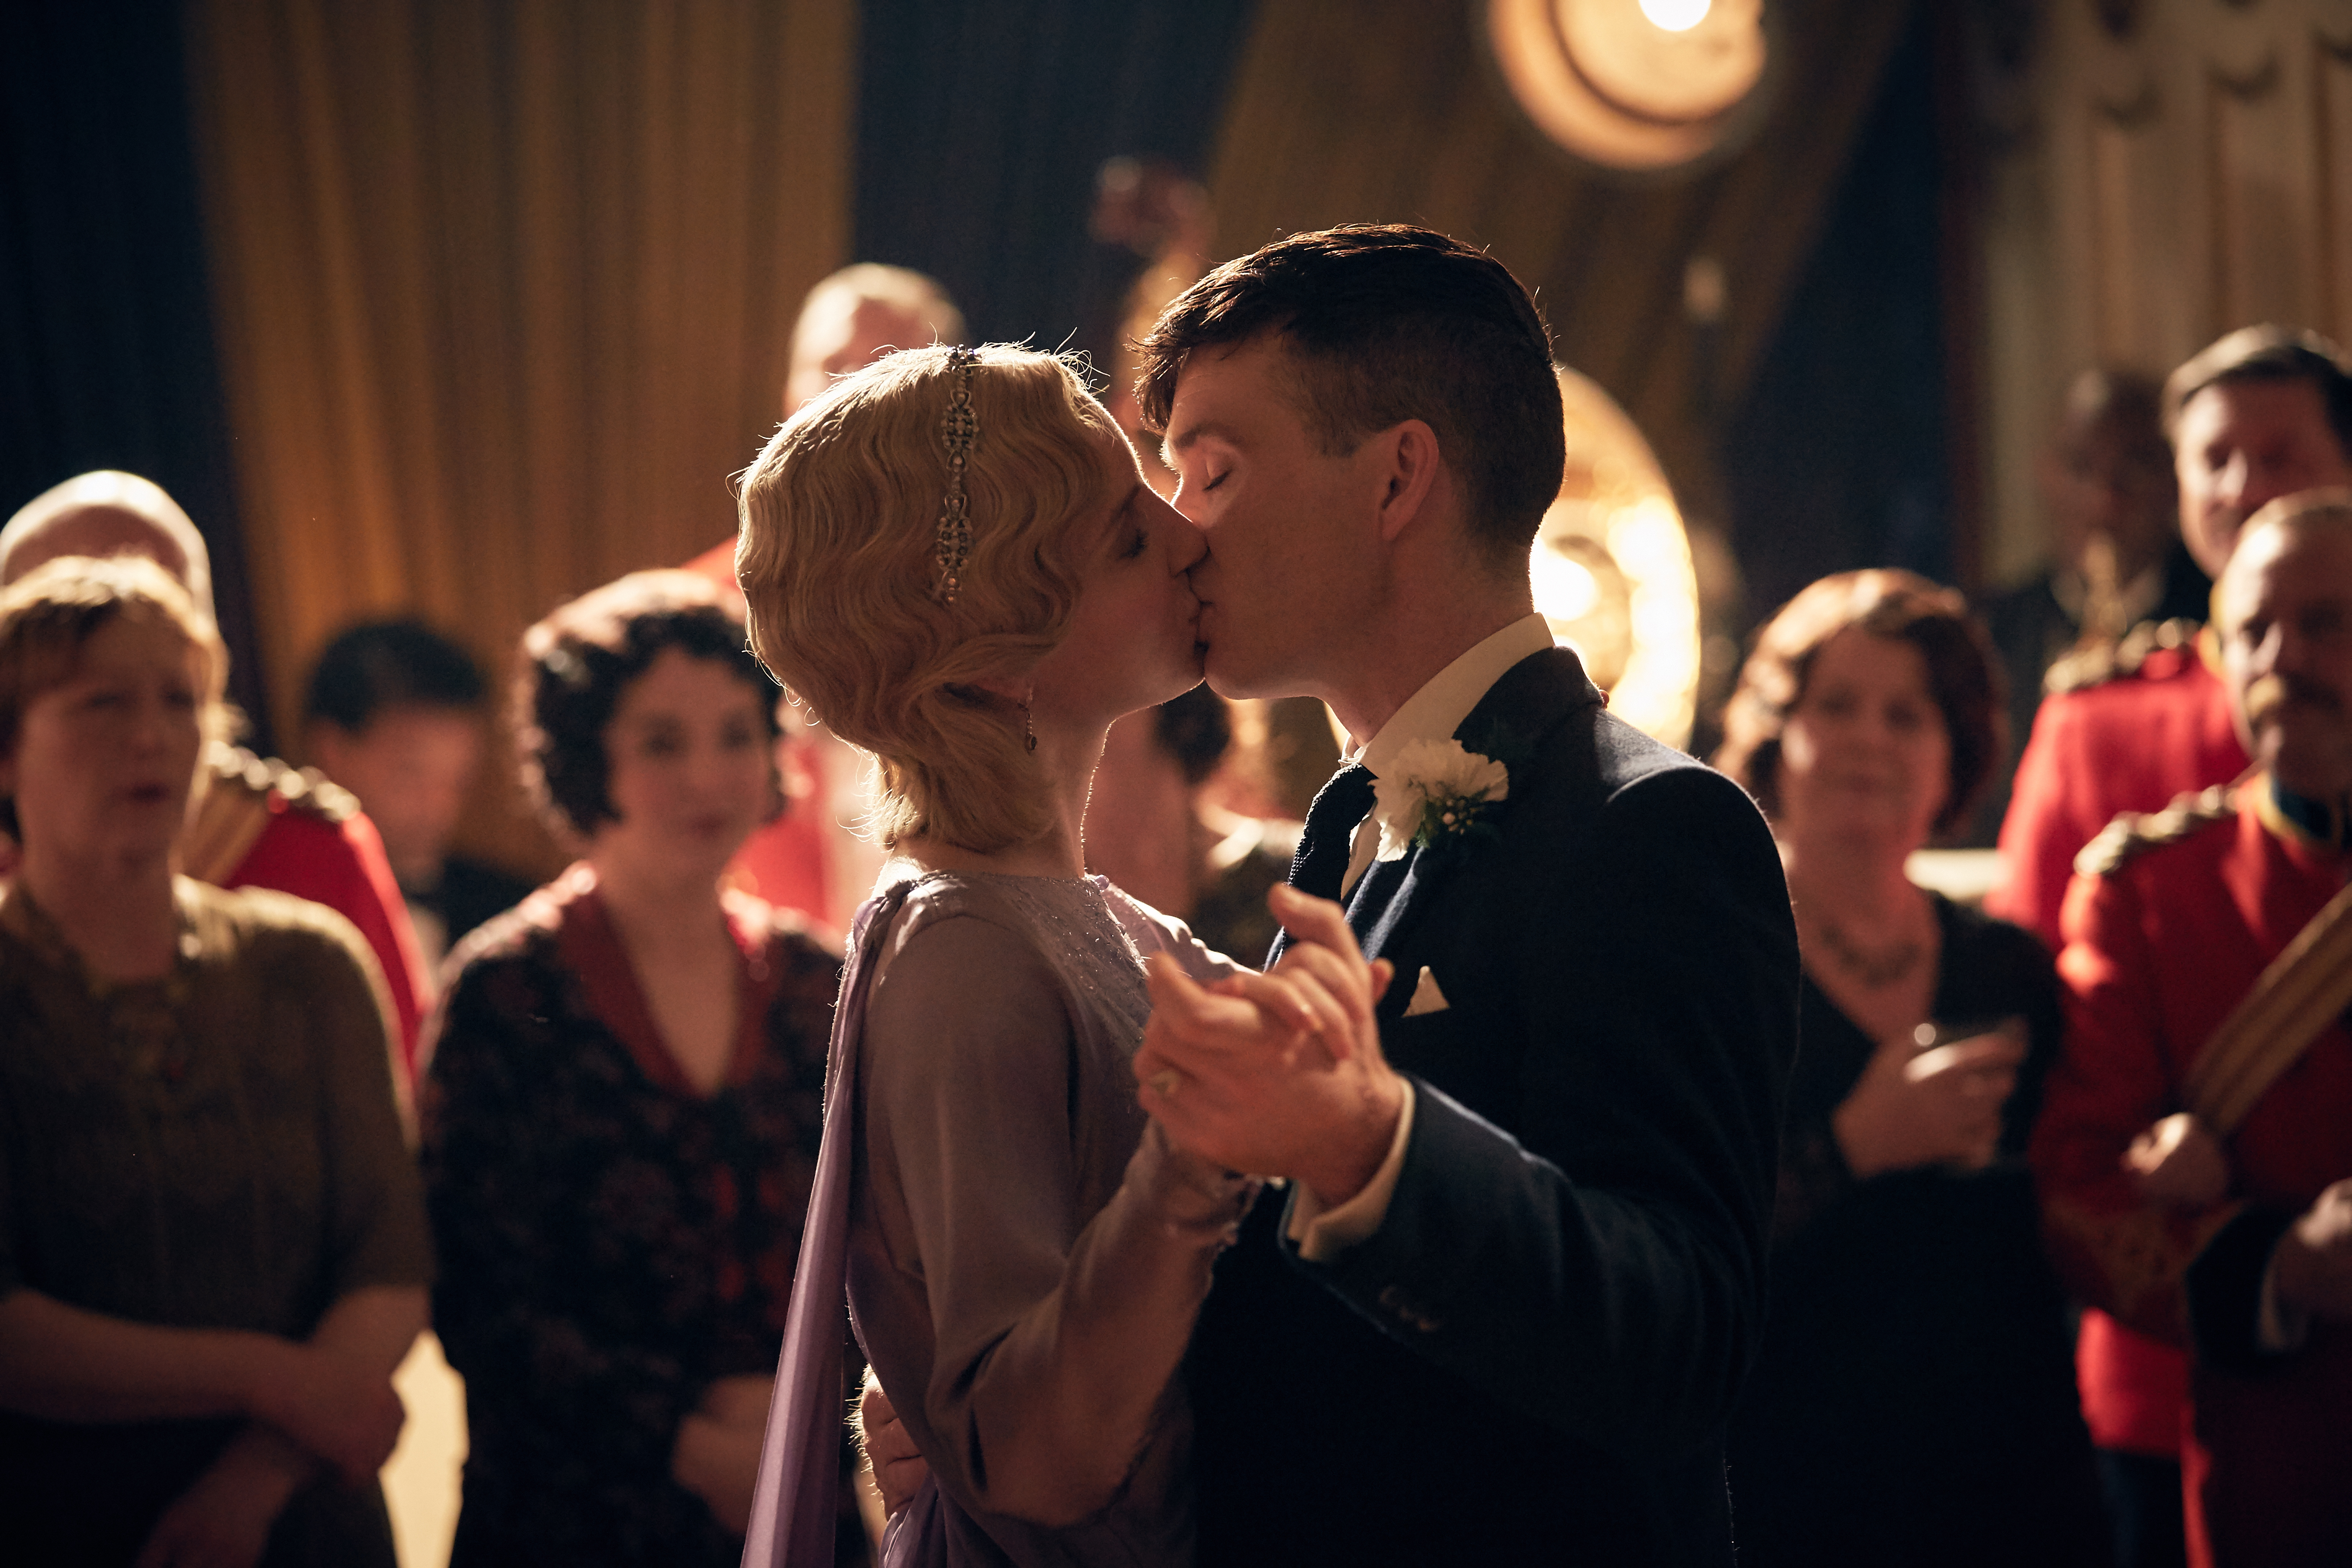 Things like marriage just couldn't last for Tommy Shelby.